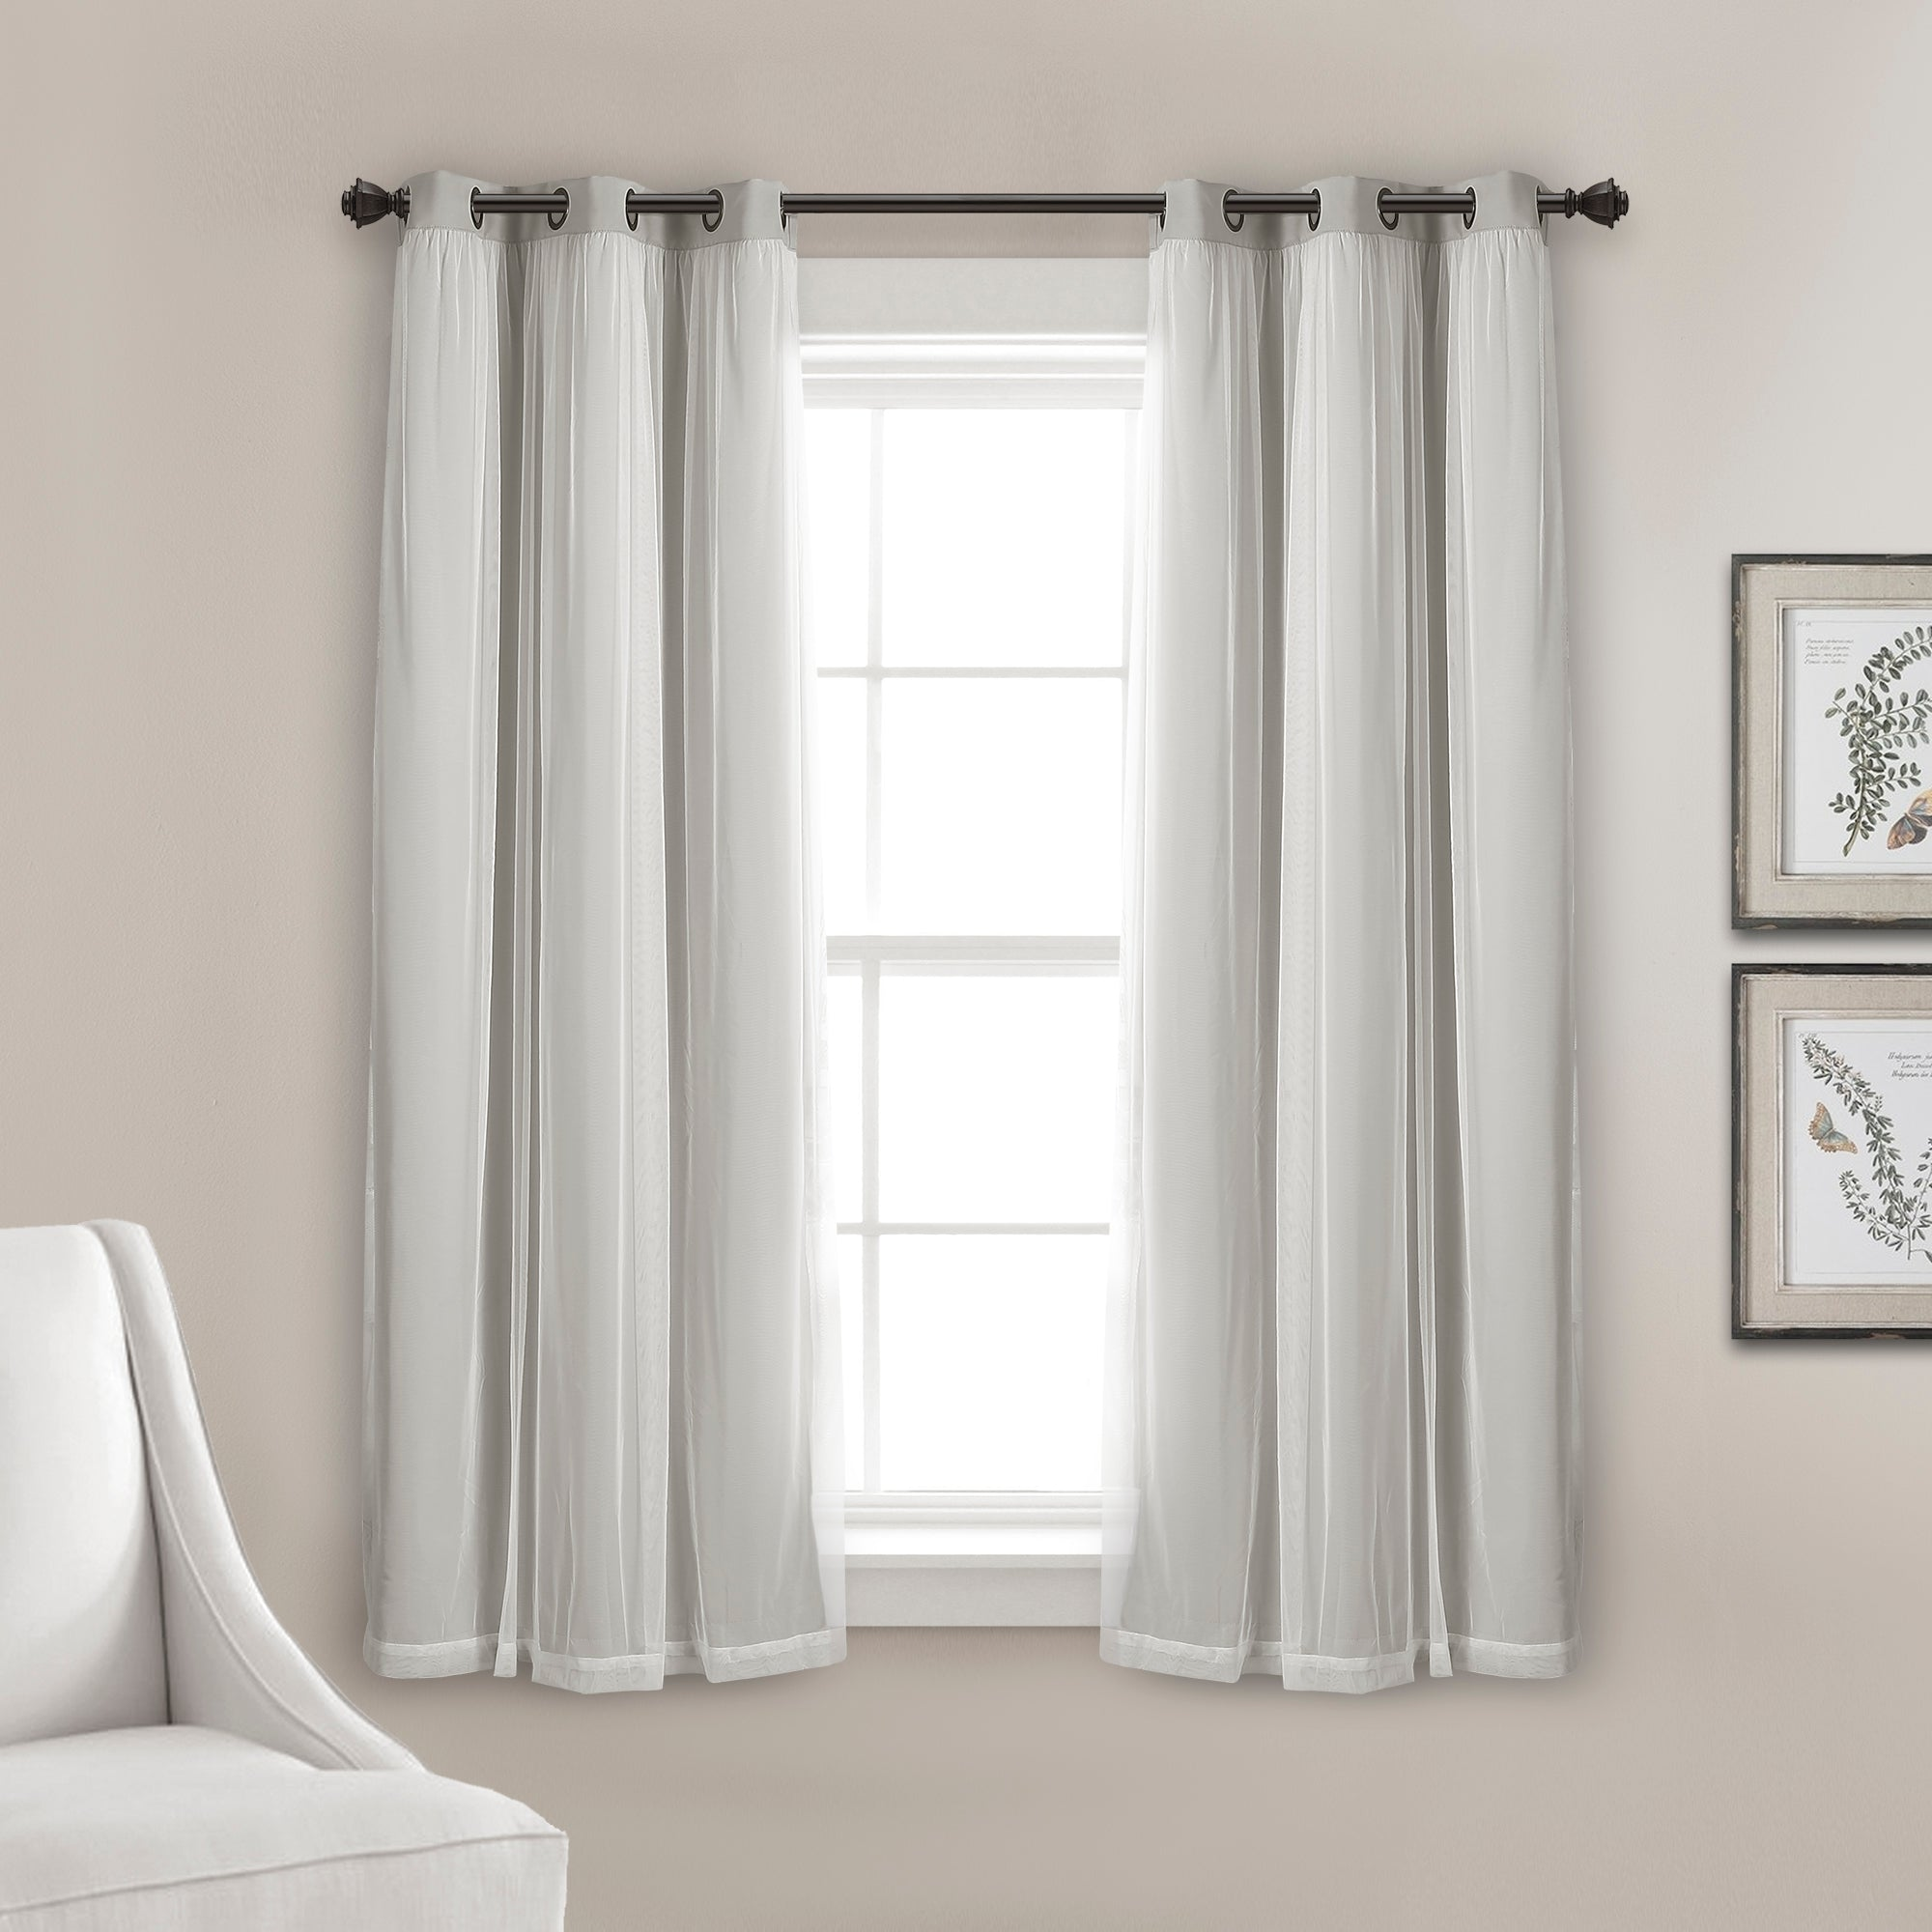 Grommet Sheer With Insulated Blackout Lining Curtain Panel Set Lush Decor Www Lushdecor Com Lushdecor